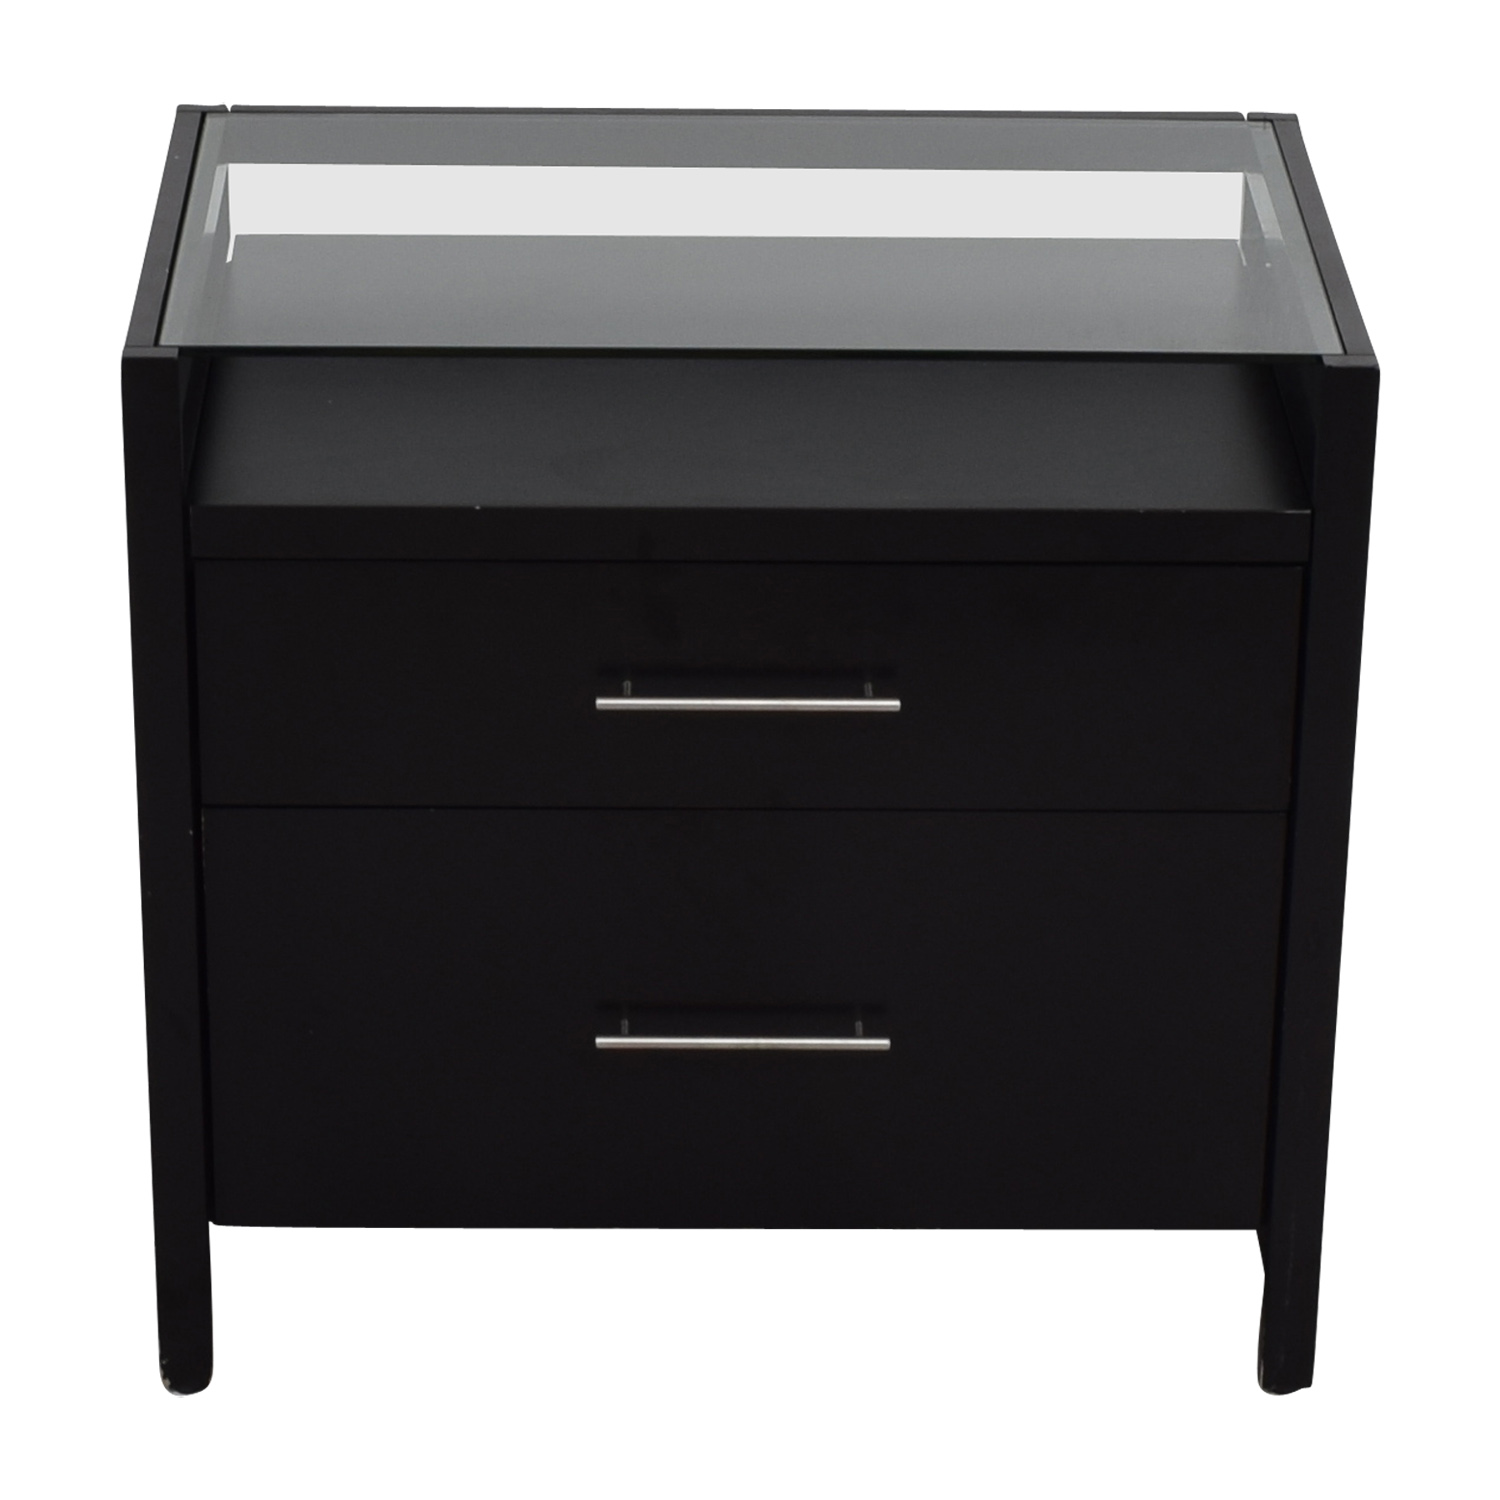 Crate & Barrel Crate & Barrel Two-Drawer Black Night Table End Tables